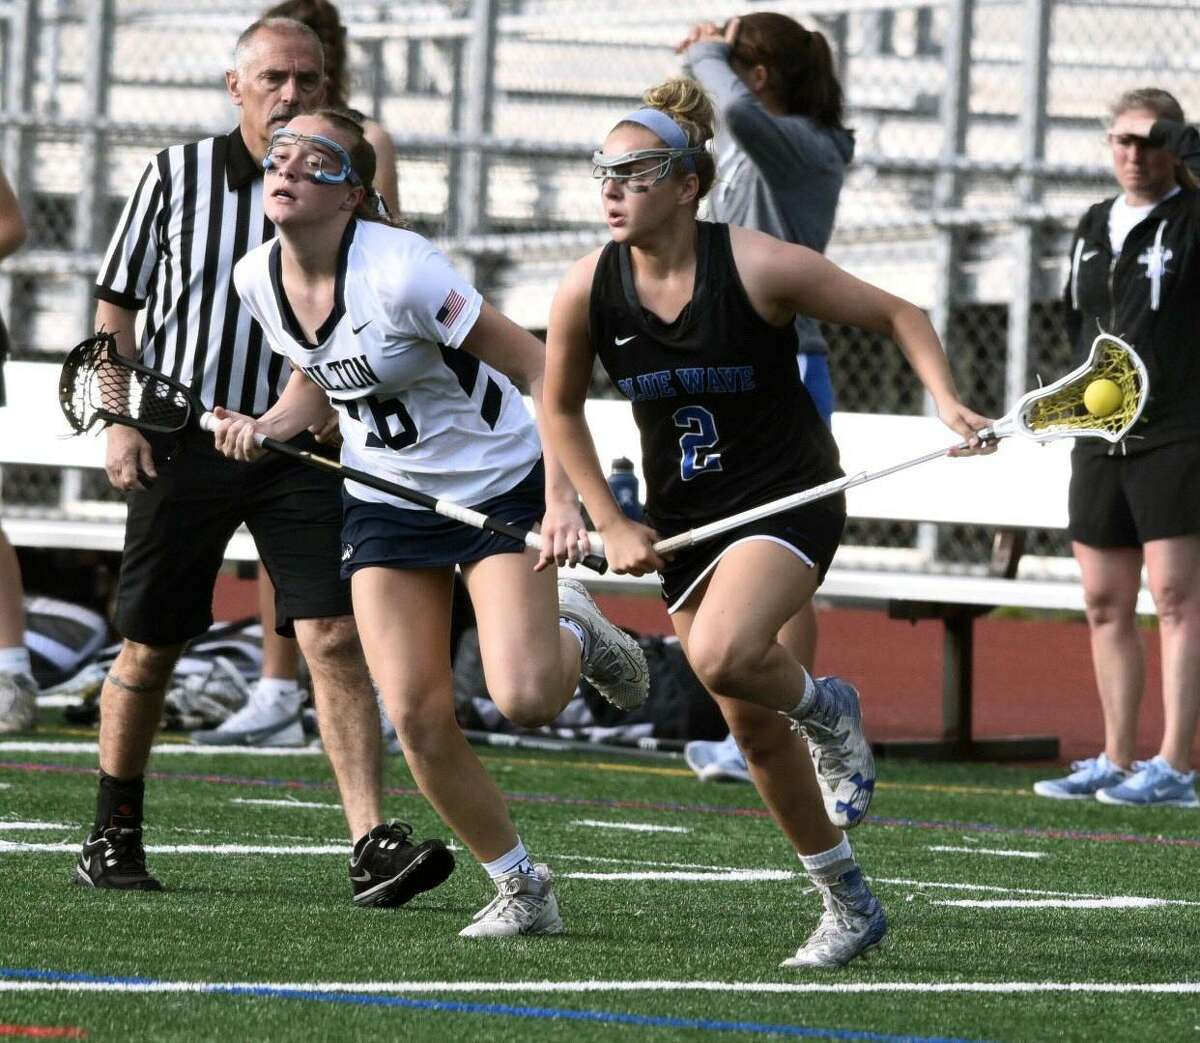 Darien's Ashley Humphrey (2) gets out in front of Wilton's Meghan Lane (16) during the FCIAC girls lacrosse semifinals at Testa Field in Norwalk on Monday, May 20, 2019.